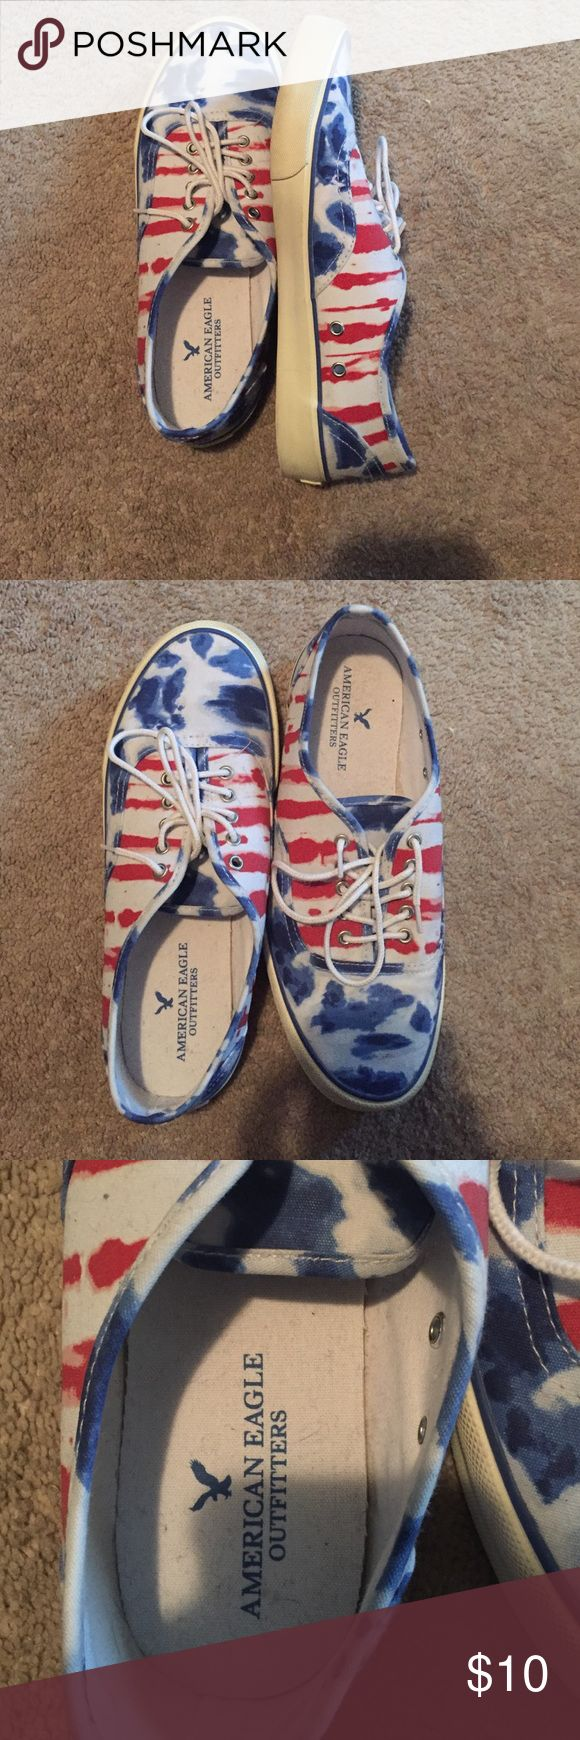 size 10 American Eagle canvas shoes Men's size 10. Red white and blue American Eagle shoes. Patriotic! New without tags American Eagle Outfitters Shoes Loafers & Slip-Ons